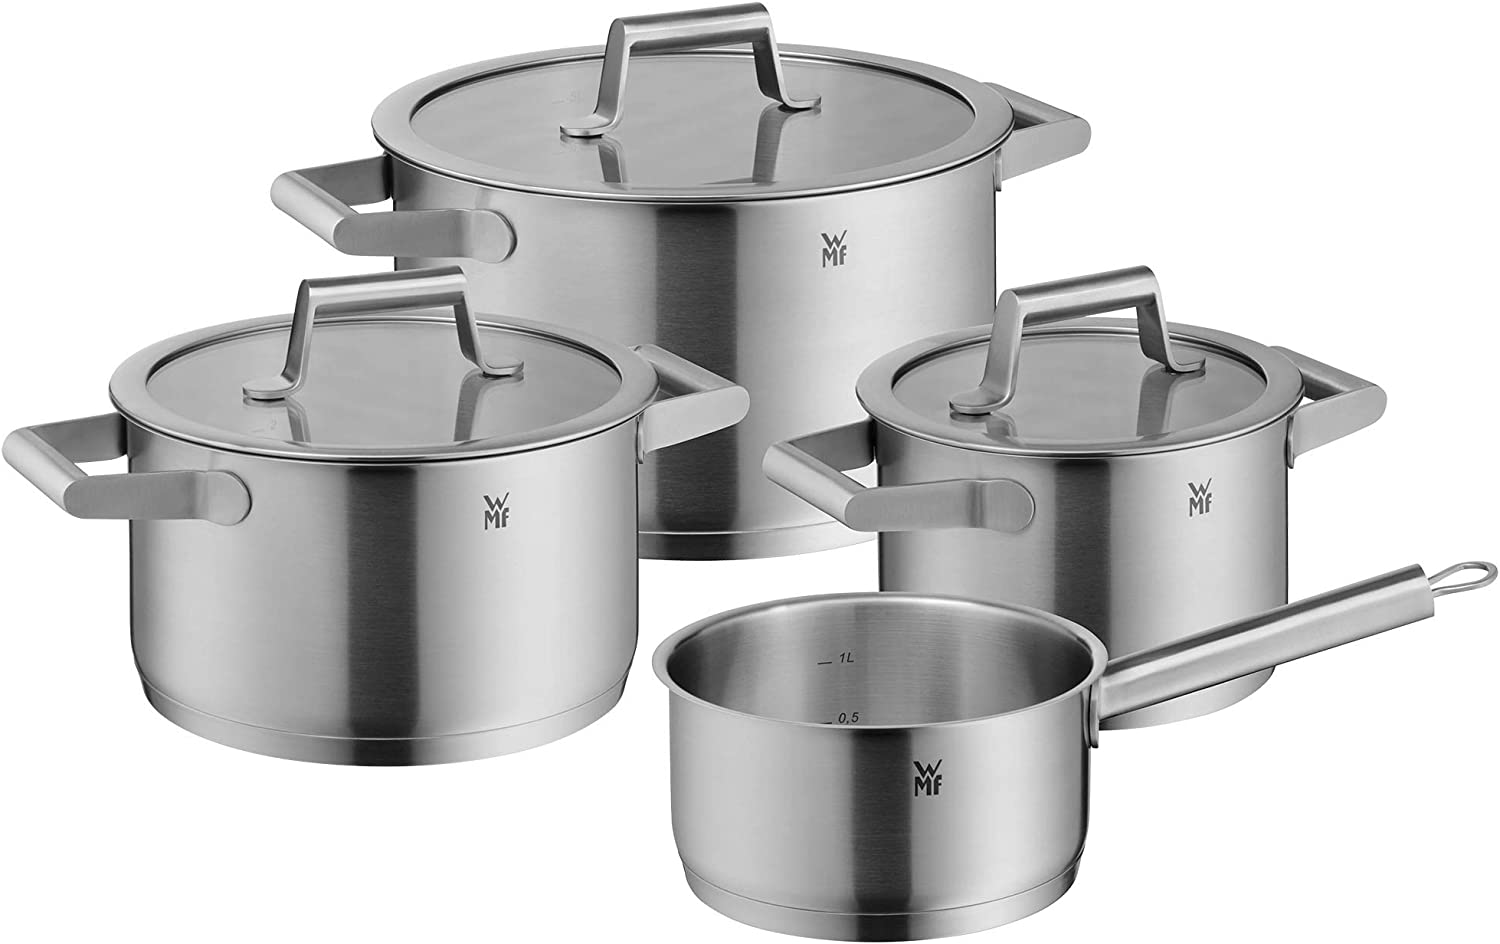 WMF 12 Comfort Line Topfset Induktion 12 teilig Cromargan Matte  Stainless Steel Pots Set with Glass Lid, Scale, Stackable, Uncoated, 12/12